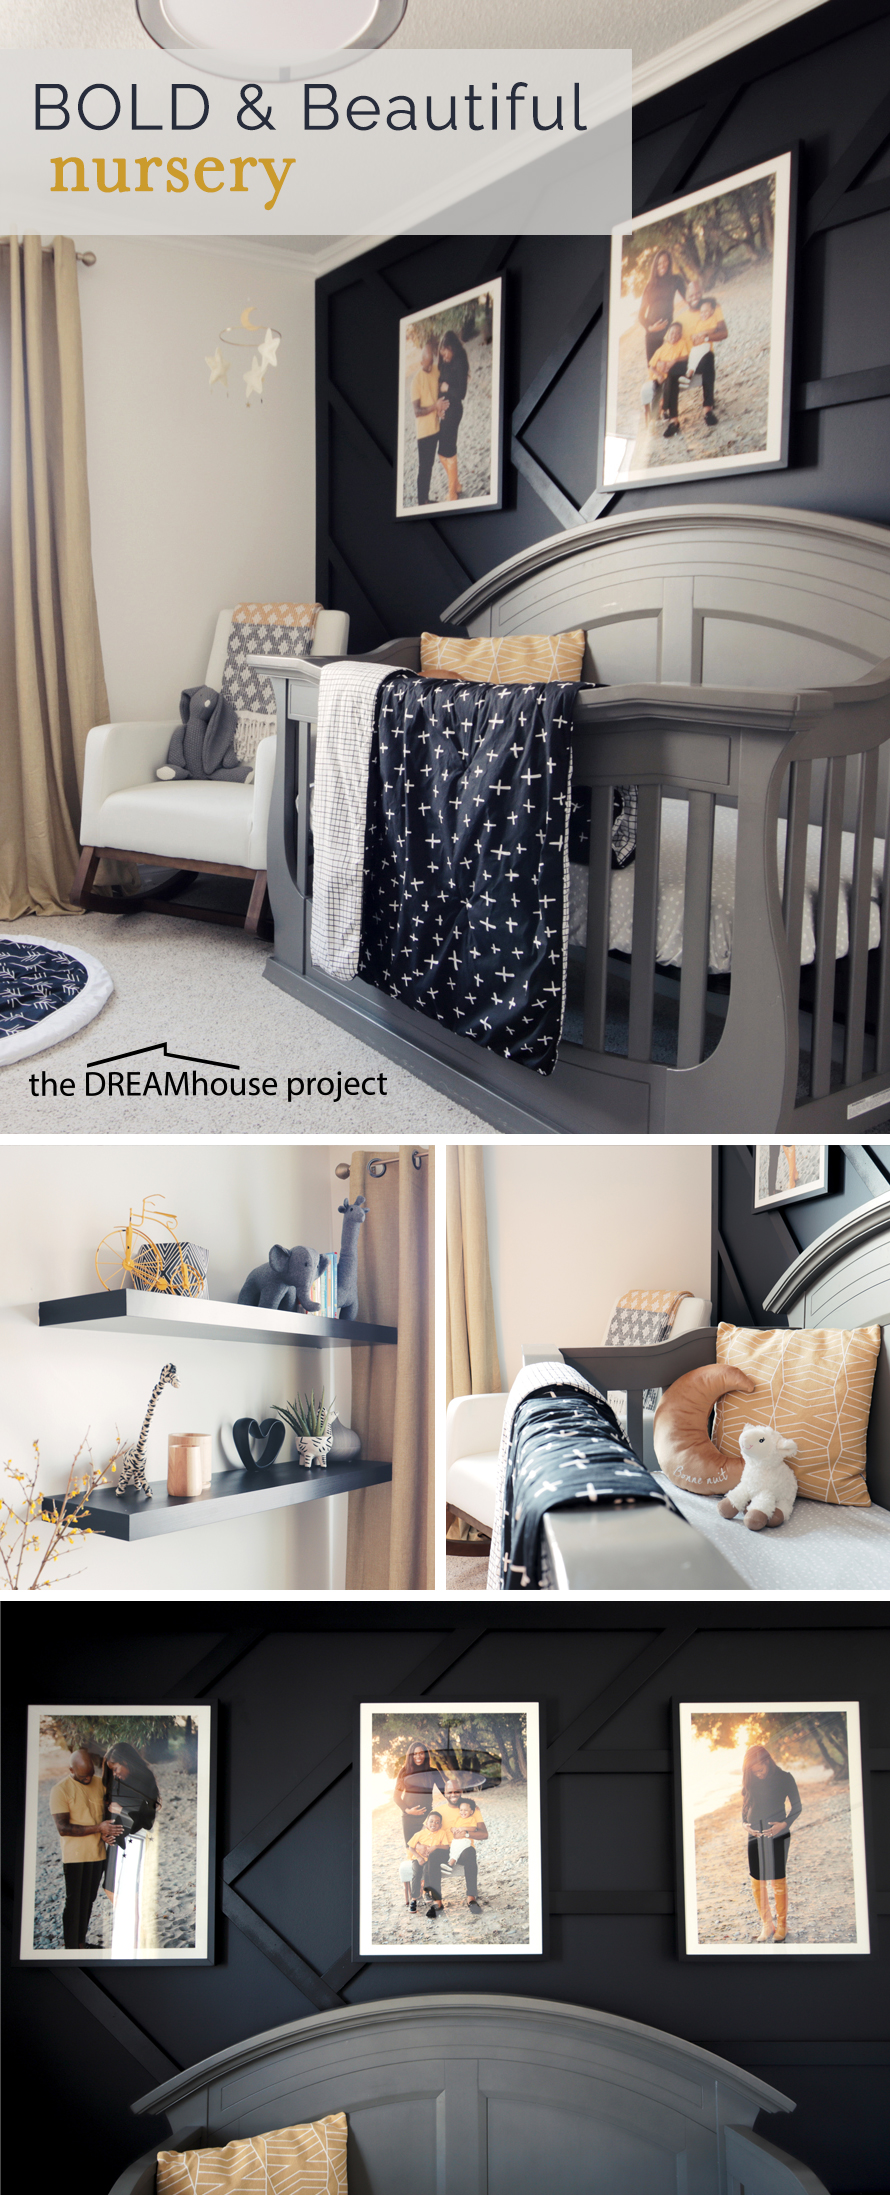 Bold Beautiful Nursery Reveal. Black, white, yellow and gold set a warm yet elegant tone for this high contrast nursery design